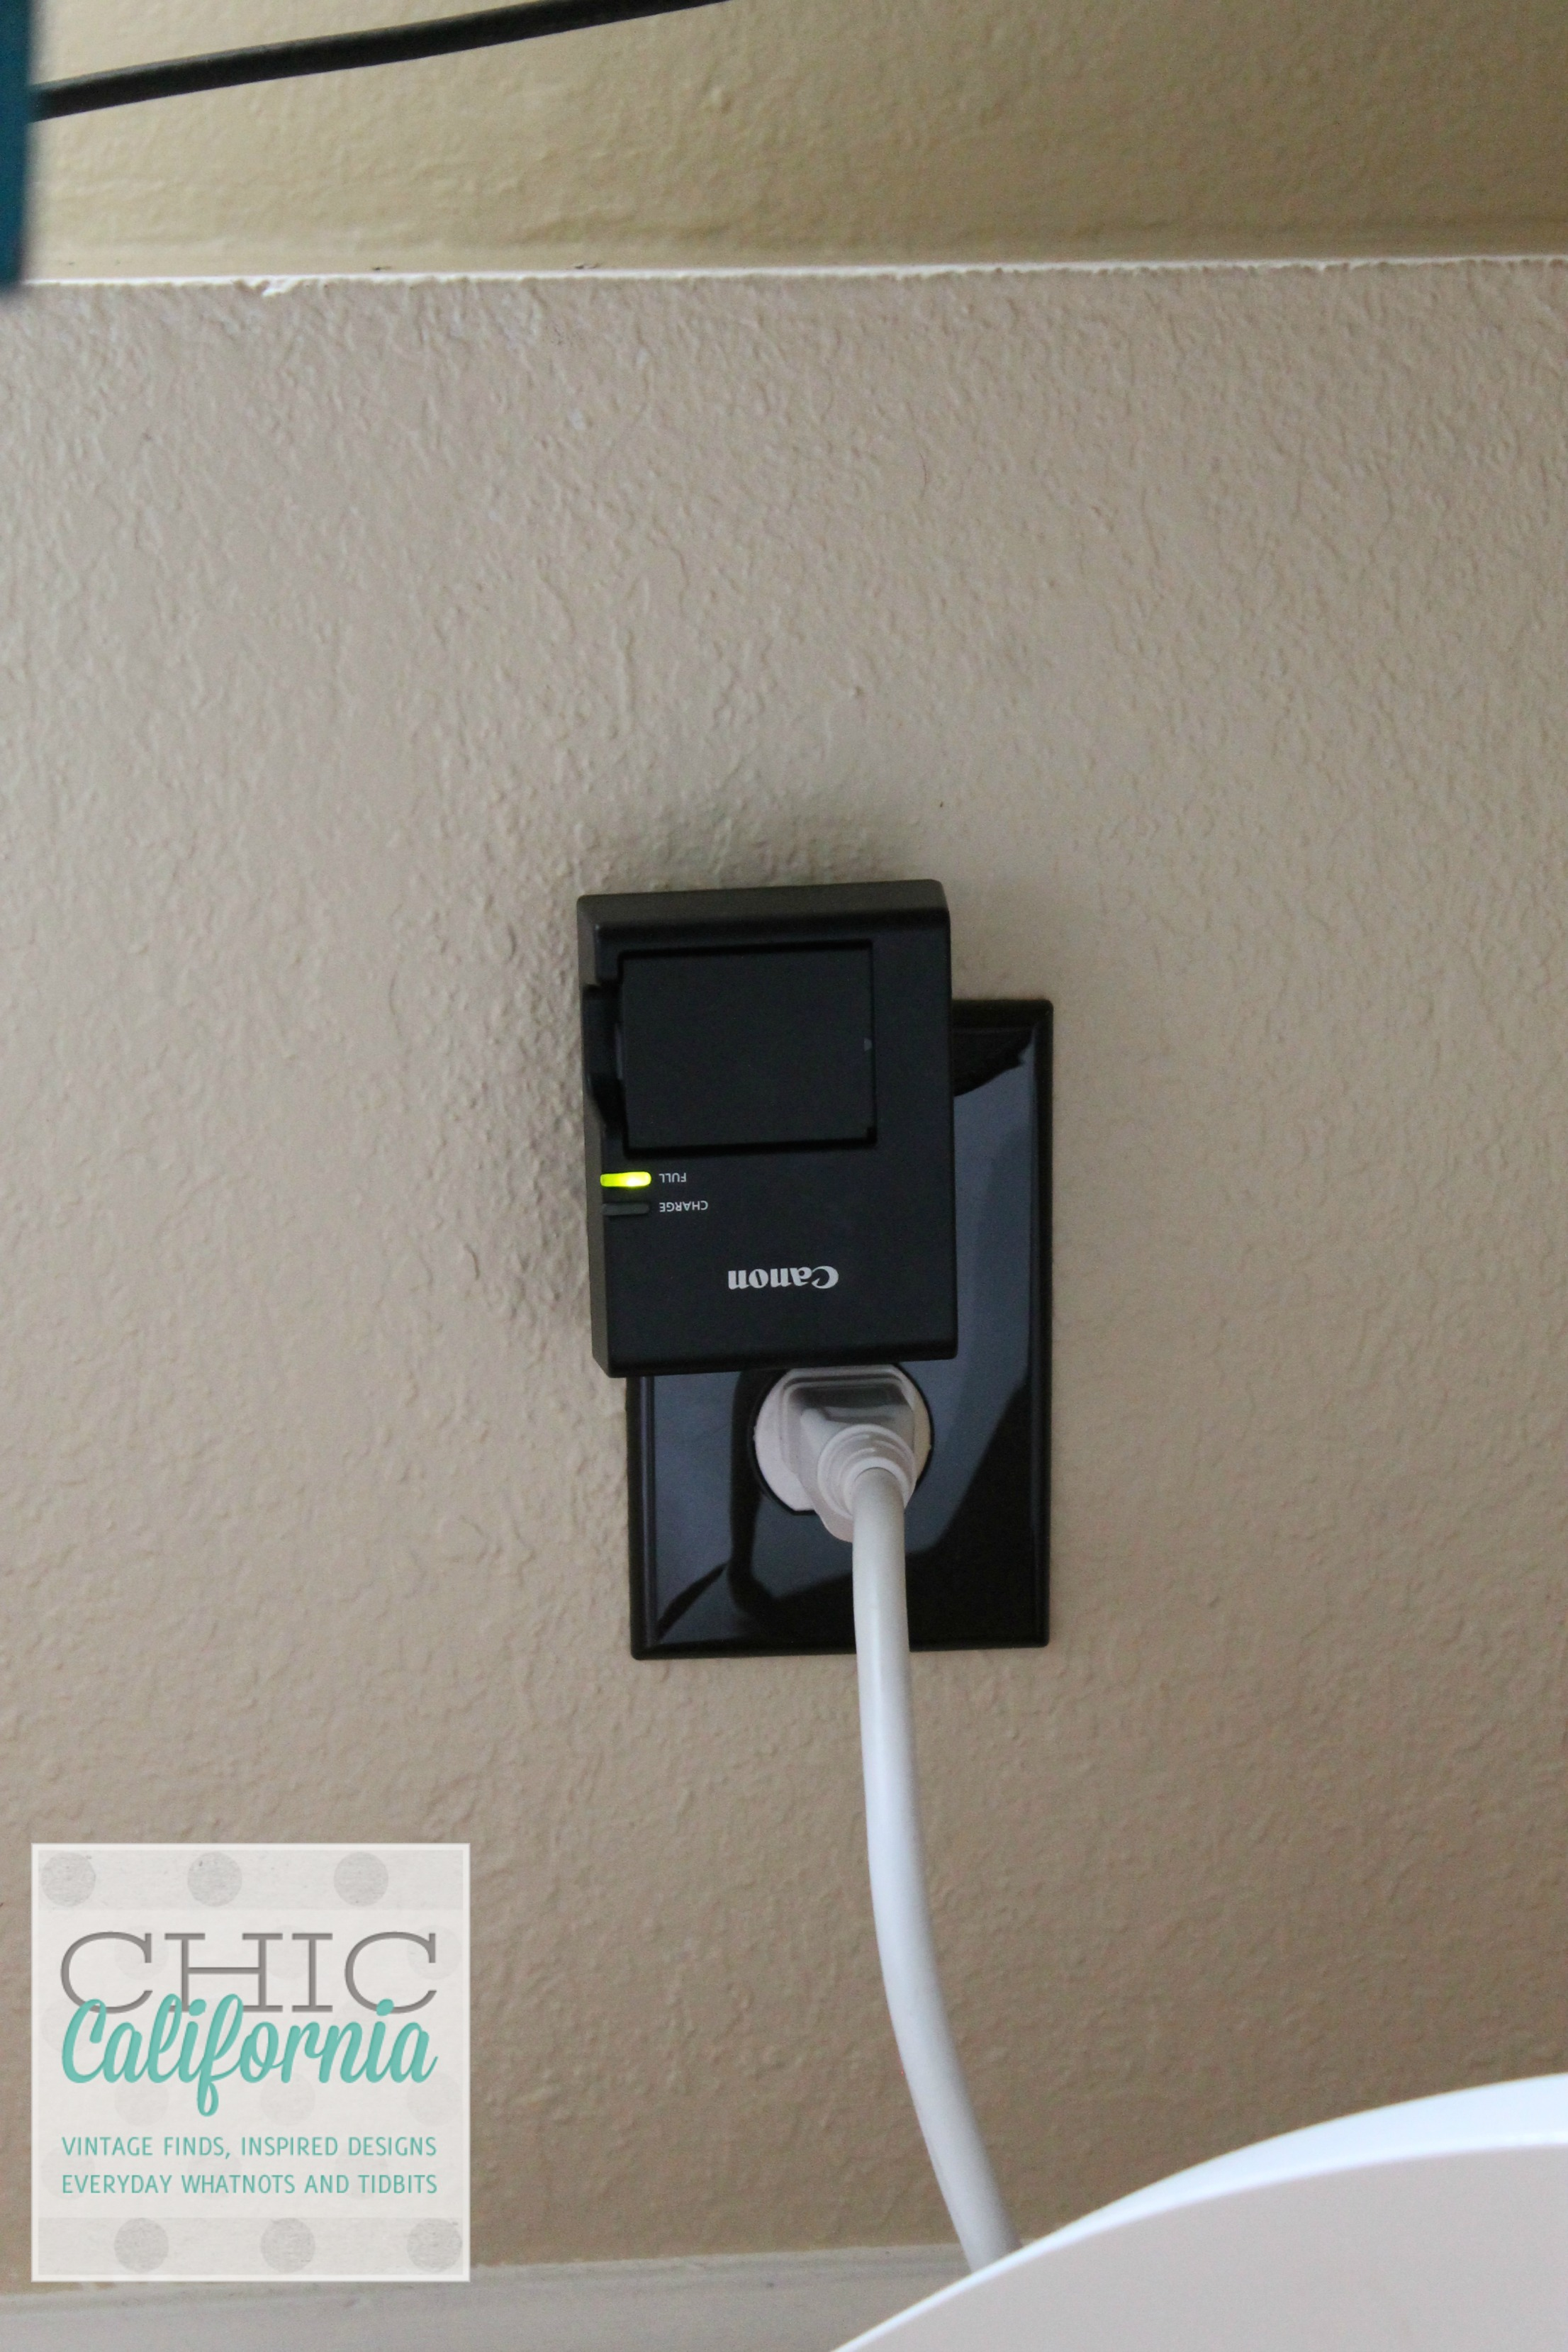 ugly outlet cover